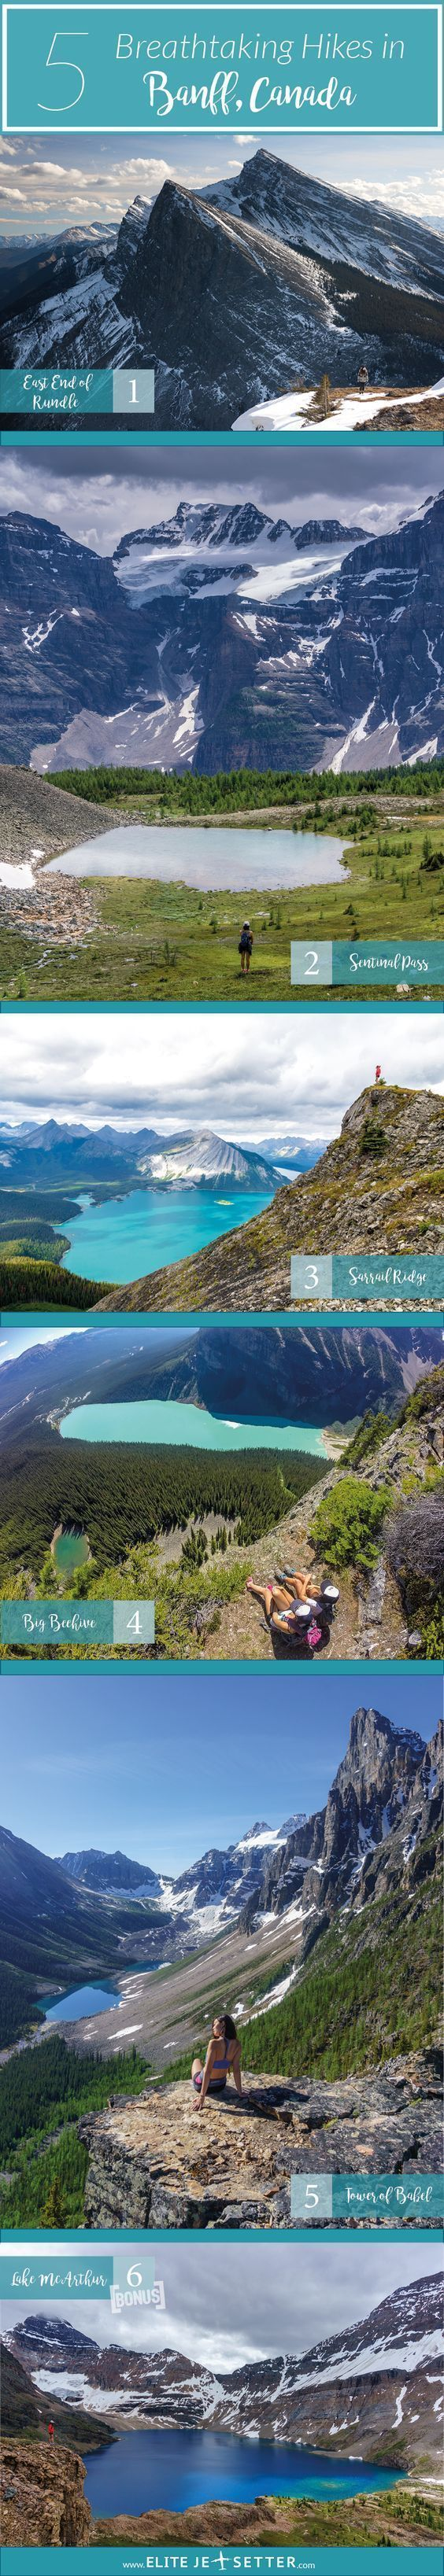 It's hard to choose the best hikes in Banff because there's so many but here are our TOP 5 MOST BREATHTAKING HIKES... Read more at www.elitejetsetter.com/top-5-best-hikes-near-banff #hiking #banff Canada Photography For Information Access our Site http://storelatina.com/travelling #CanadaPhotography #traveling #hikeinformation